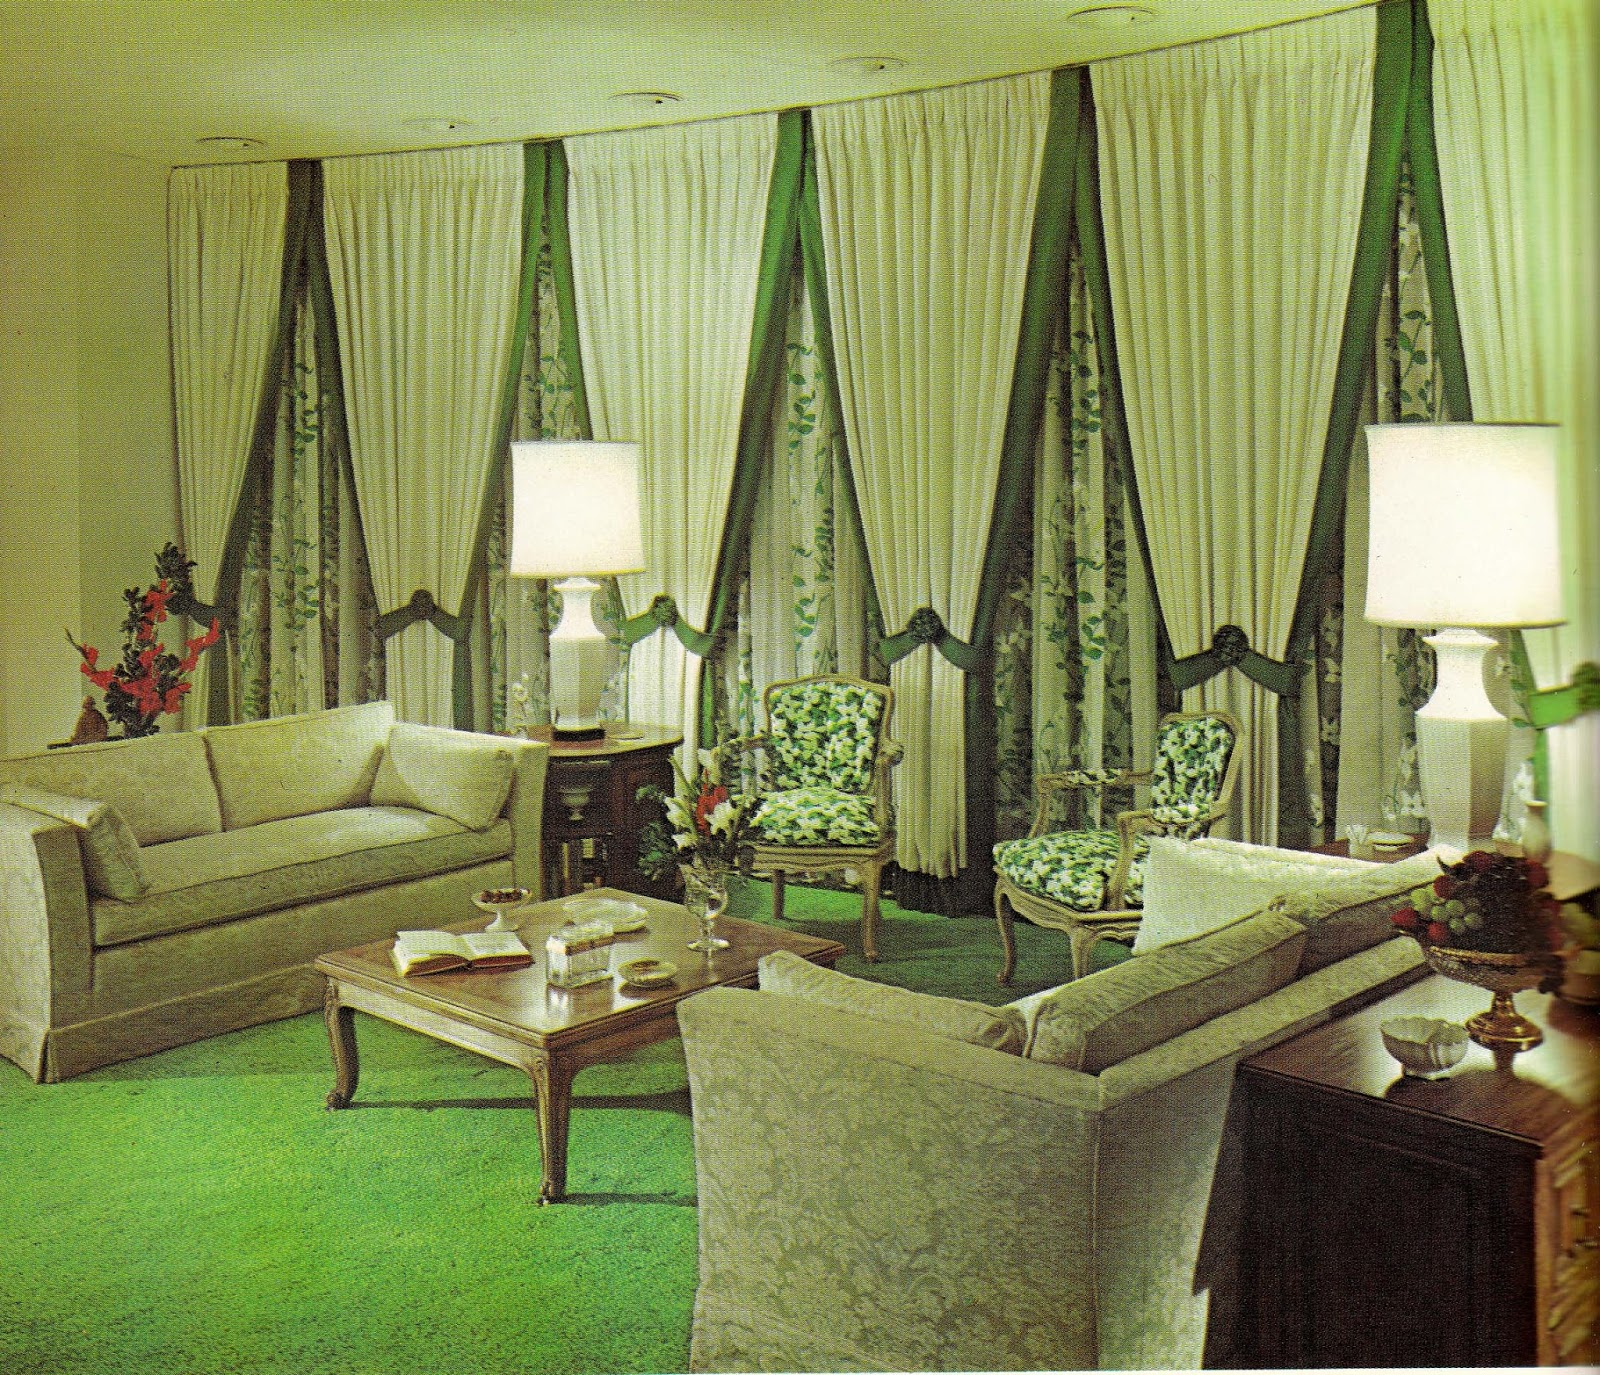 1960s interior d cor the decade of psychedelia gave rise for 1960s decoration